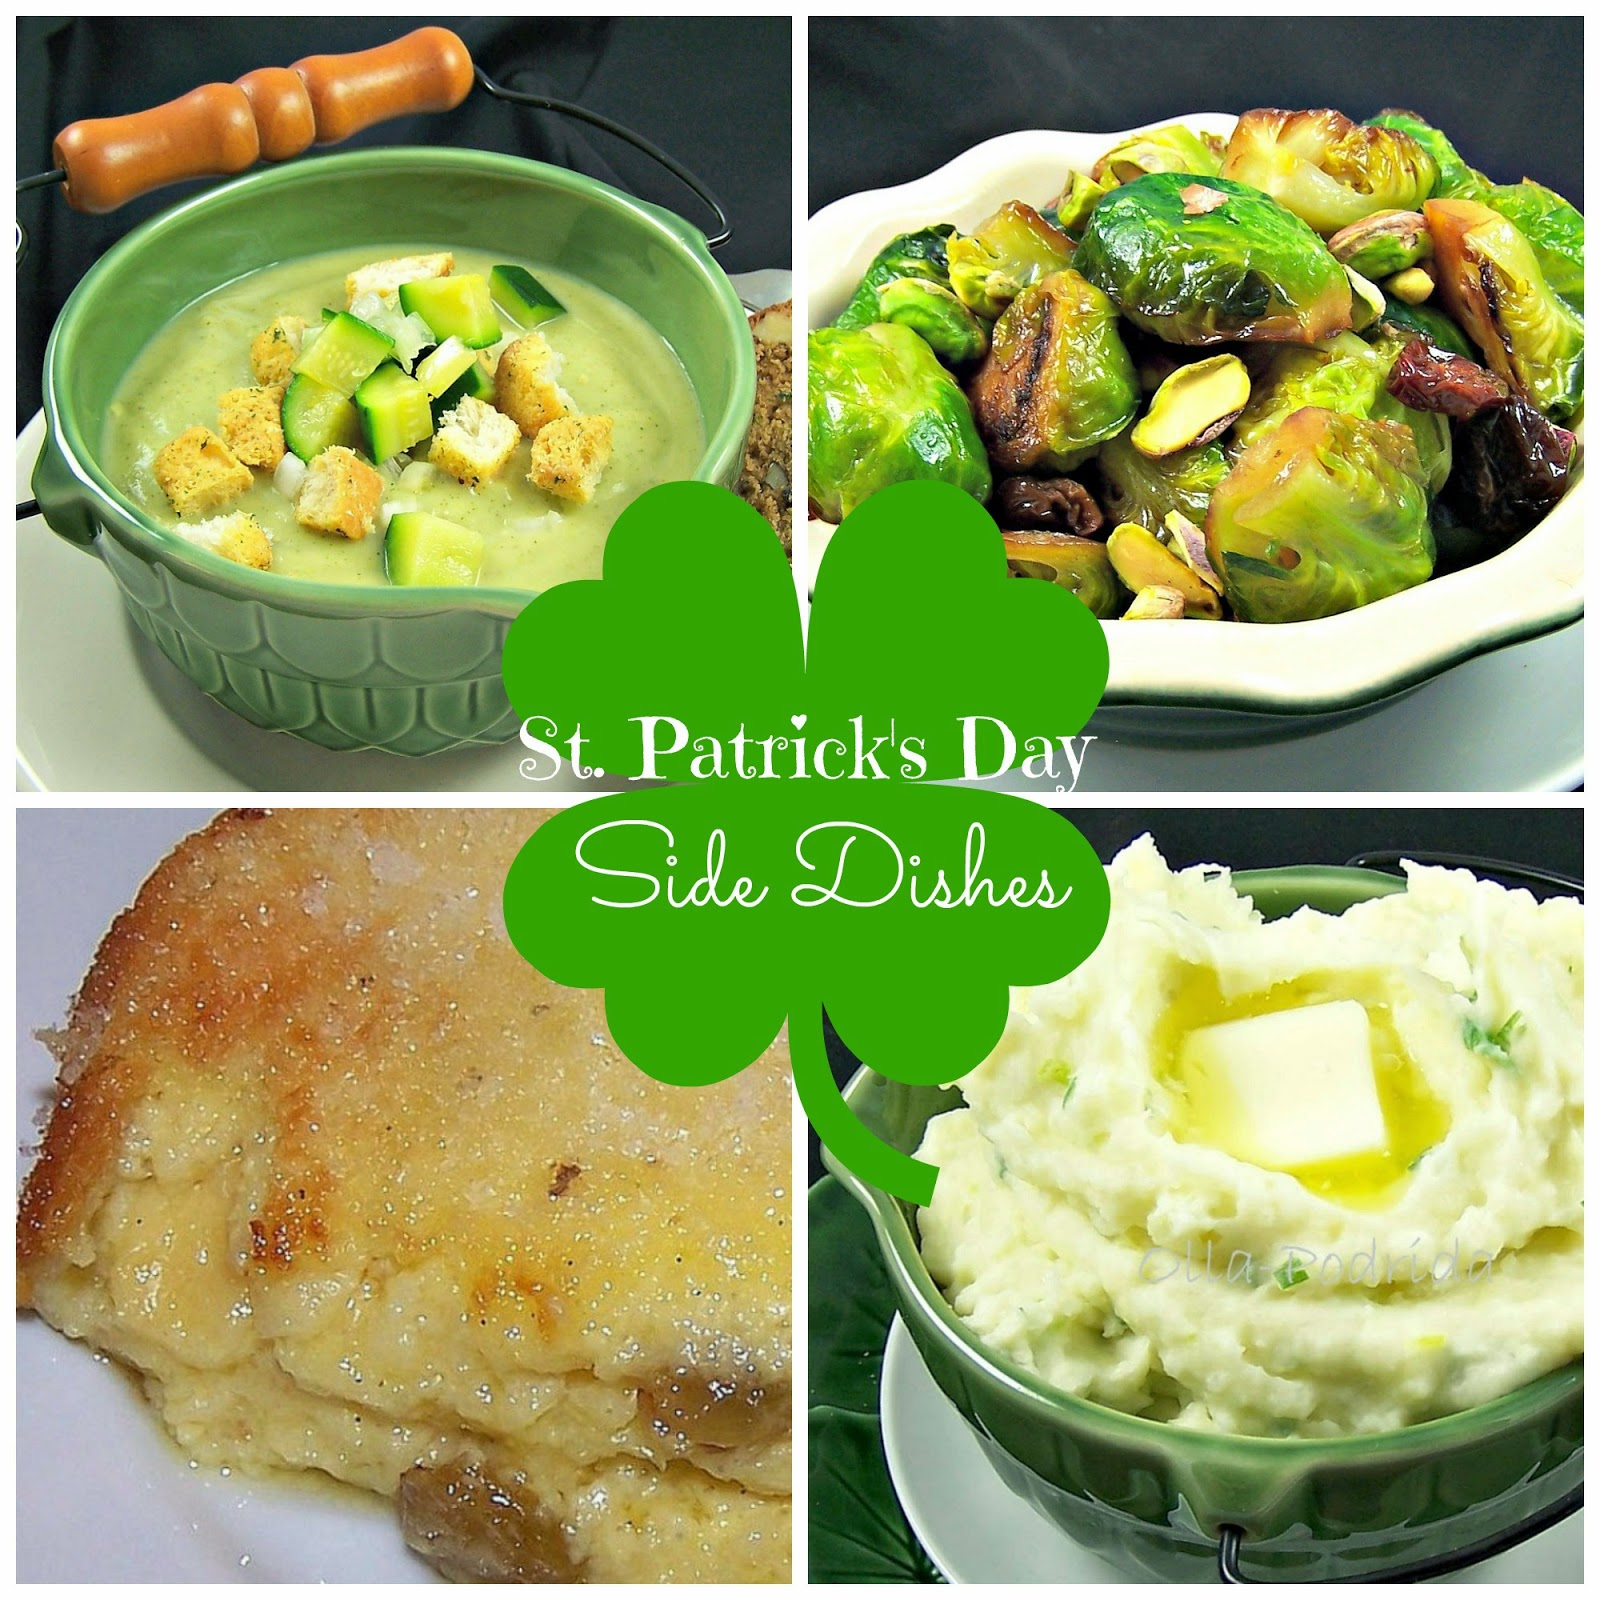 St Patrick S Day Breakfast She Brooke: Simple Fireless Cooking Dishes